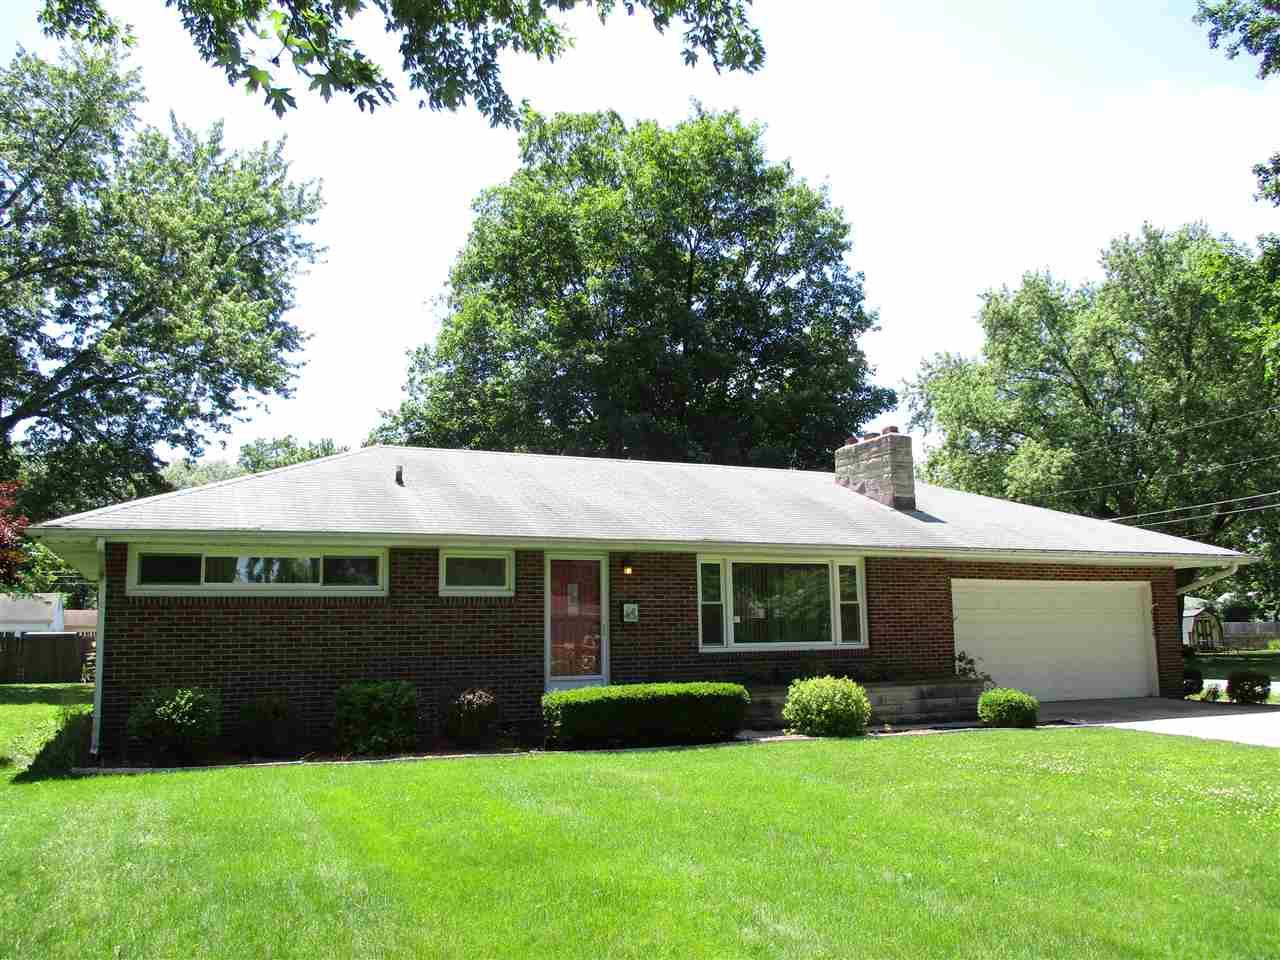 6506 Donna, Fort Wayne, IN 46819